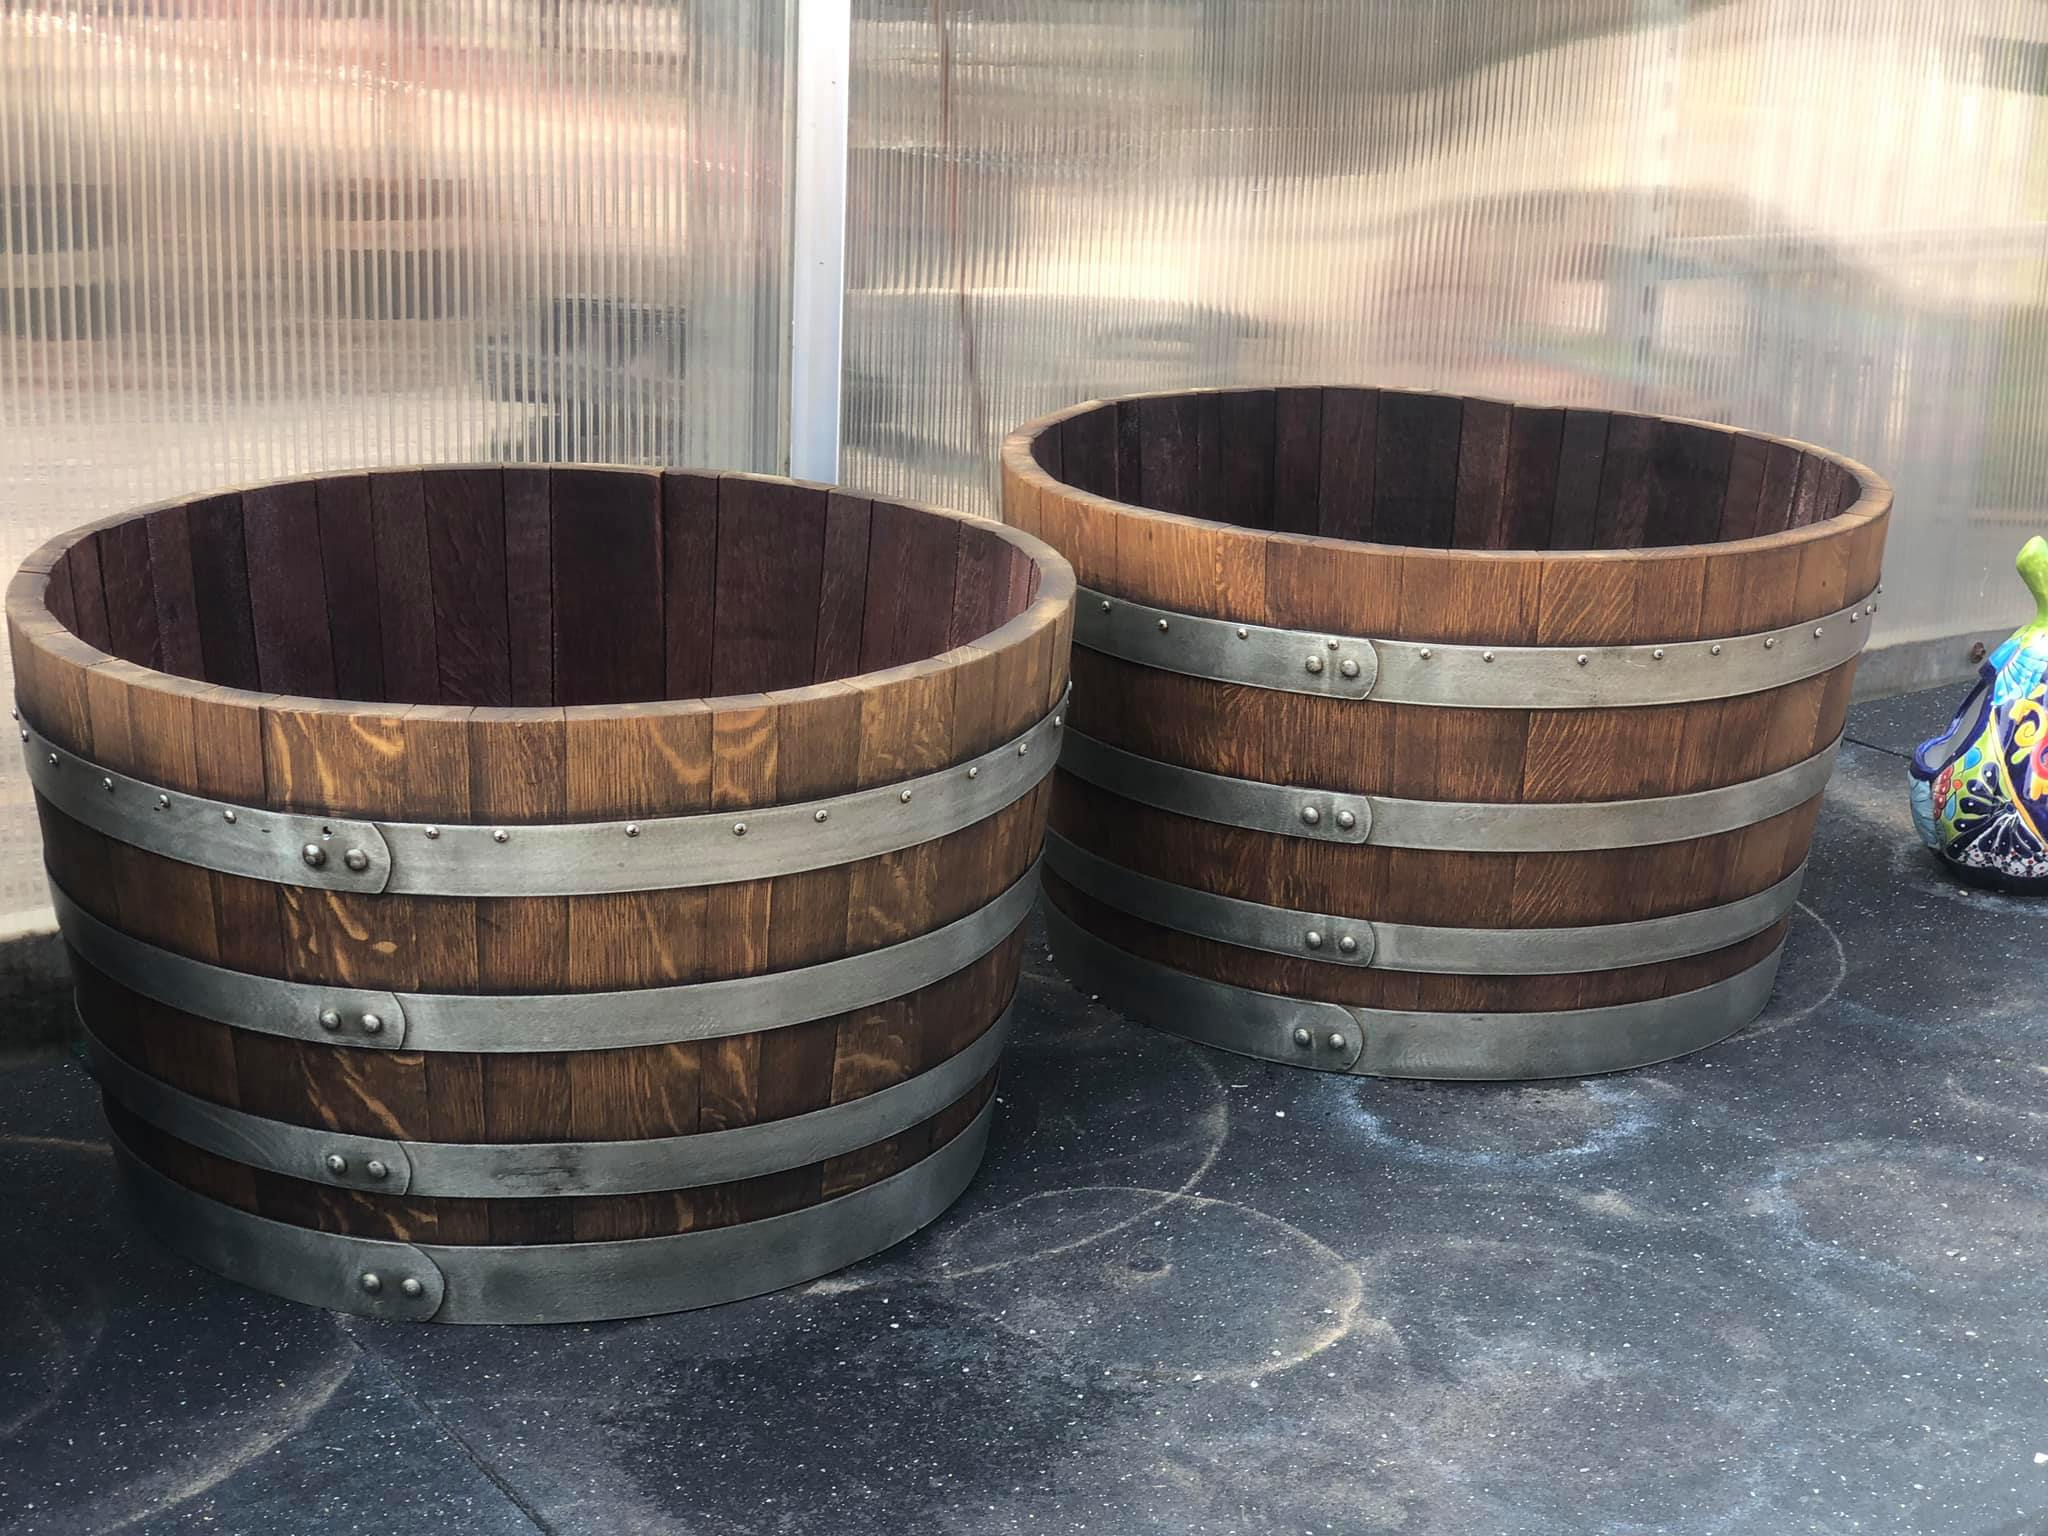 Really cool Whiskey Barrels & Whiskey Barrel planters!! Come check them out!